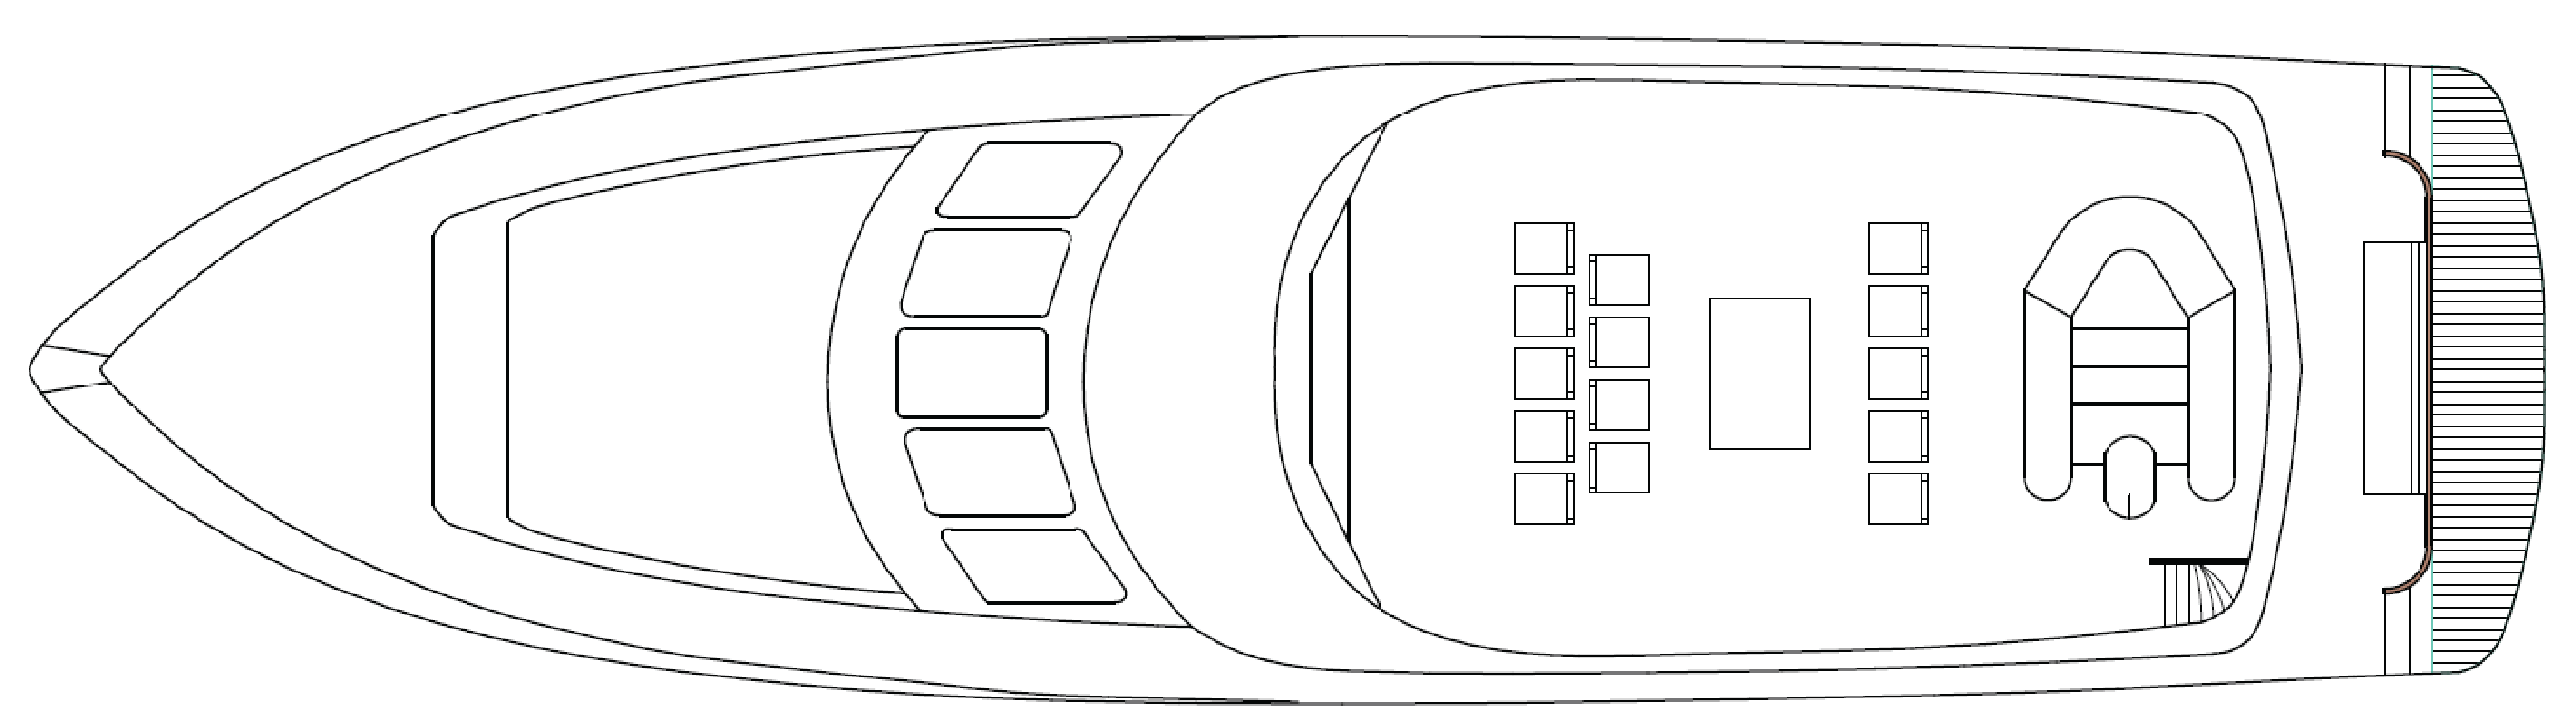 Top Deck floor plan of the MV Southern Secret showing seating and viewing areas.